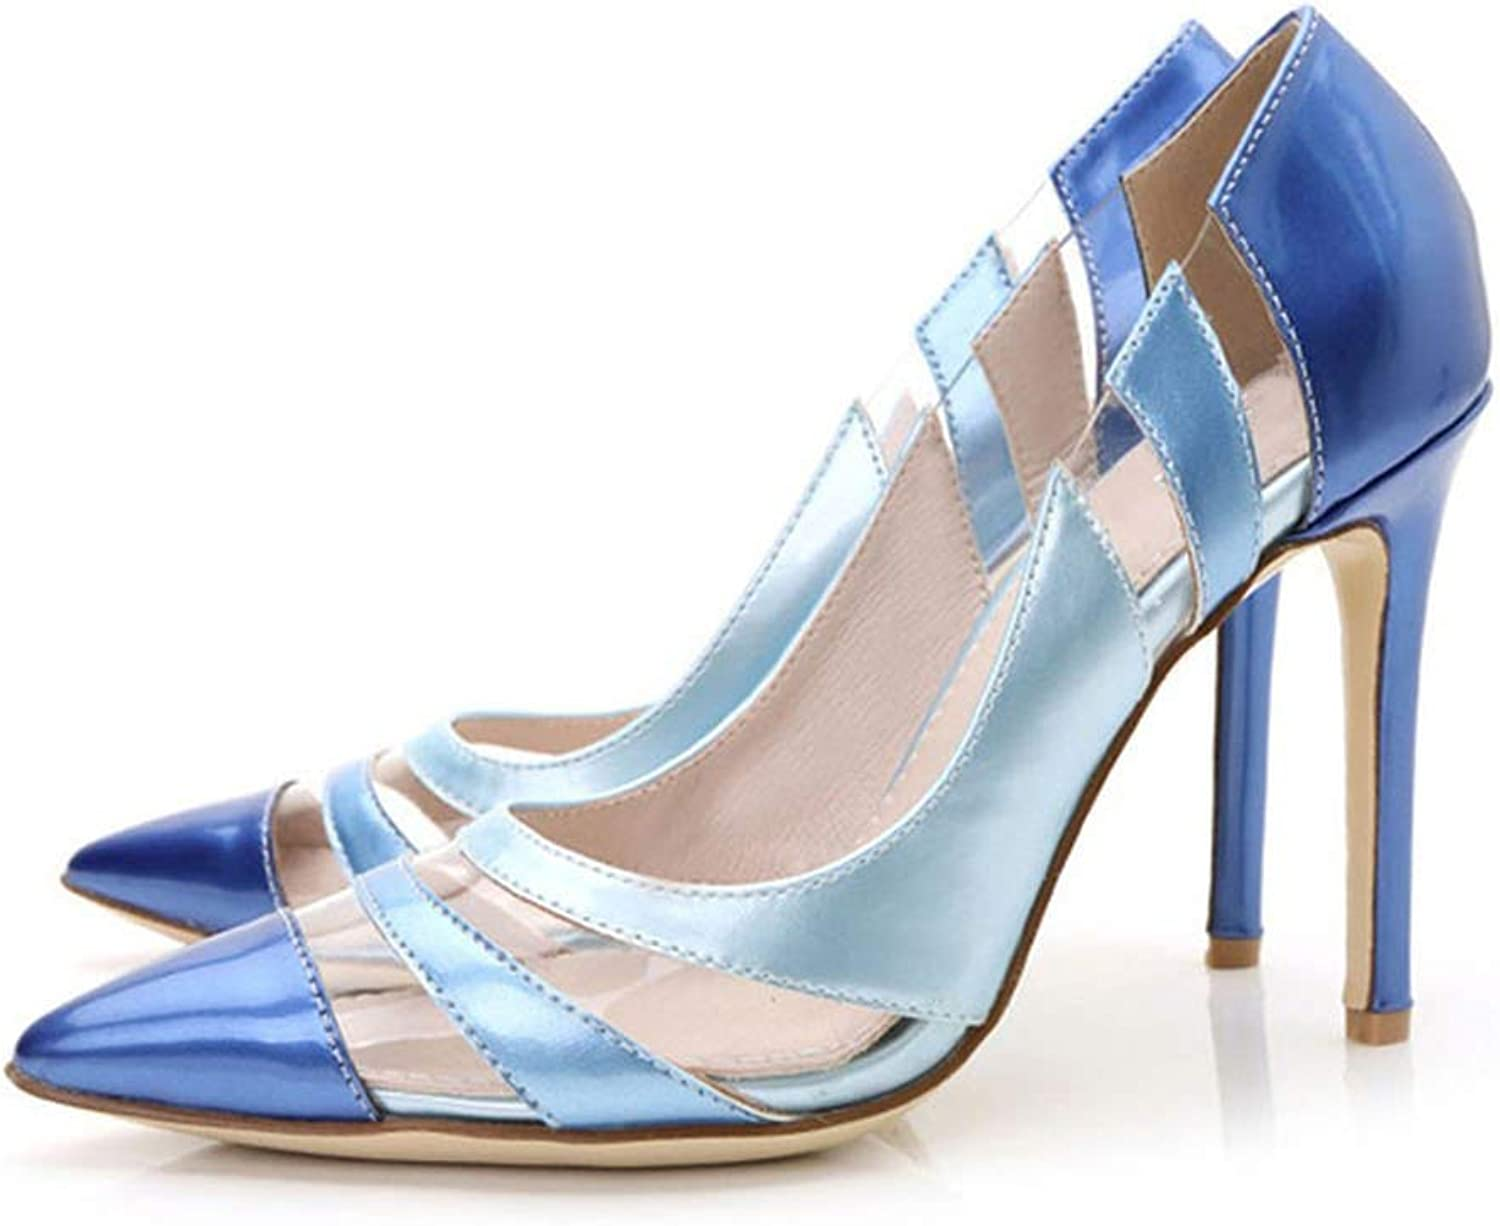 Women Pumps High Heels shoes Pointed Toe PVC Transparent Royal bluee Dress shoes Woman Party